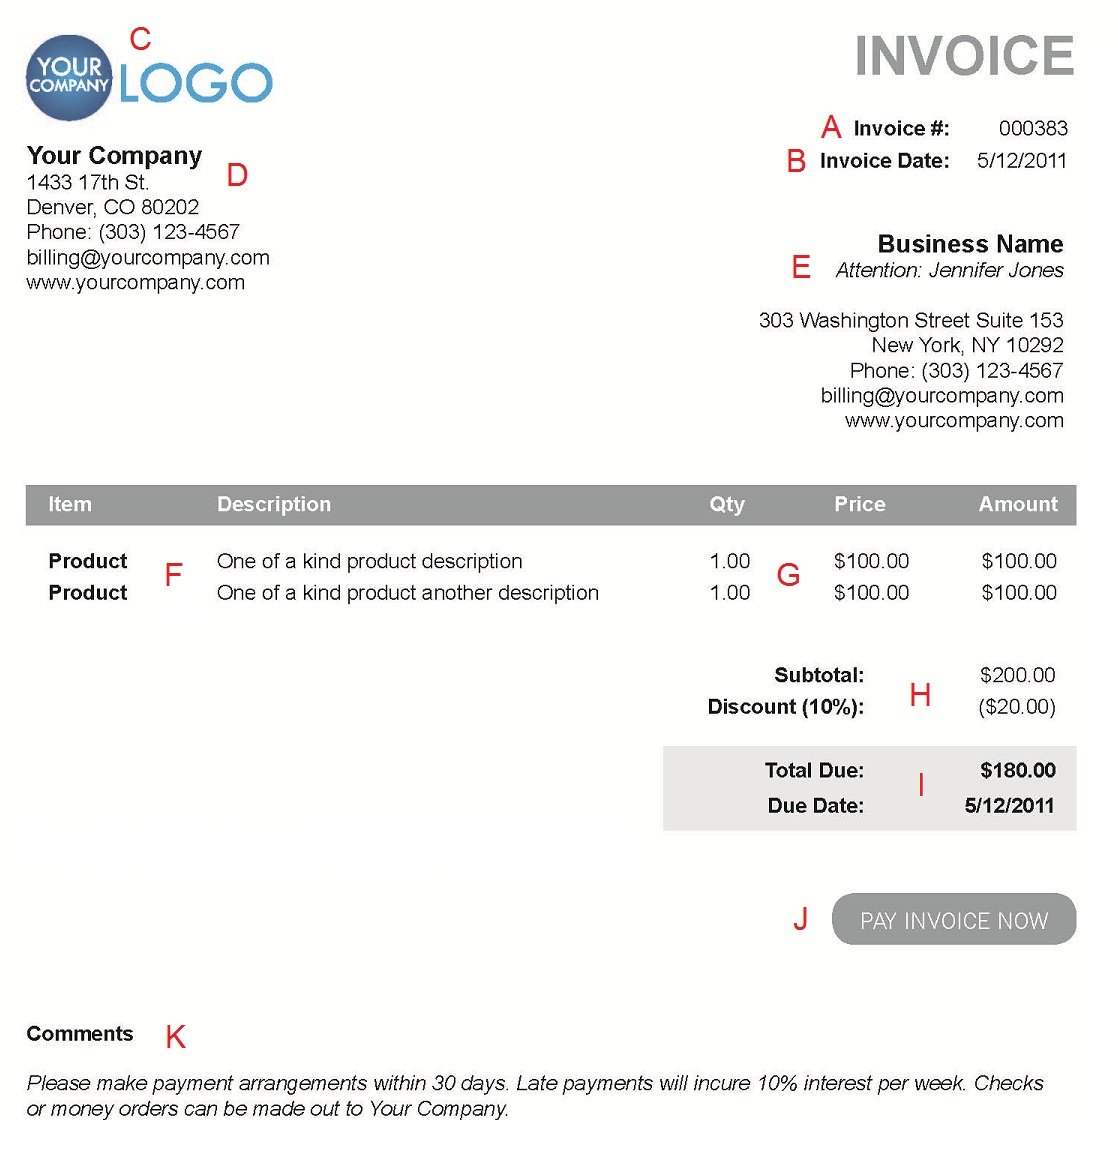 Opposenewapstandardsus  Wonderful The  Different Sections Of An Electronic Payment Invoice With Luxury A  With Charming Create Receipts Online Also Child Care Tax Receipt Template In Addition Electronic Receipts Template And Receipt Forms Templates As Well As Delaware Gross Receipts Tax Rate Additionally Doctor Receipt Template From Paysimplecom With Opposenewapstandardsus  Luxury The  Different Sections Of An Electronic Payment Invoice With Charming A  And Wonderful Create Receipts Online Also Child Care Tax Receipt Template In Addition Electronic Receipts Template From Paysimplecom